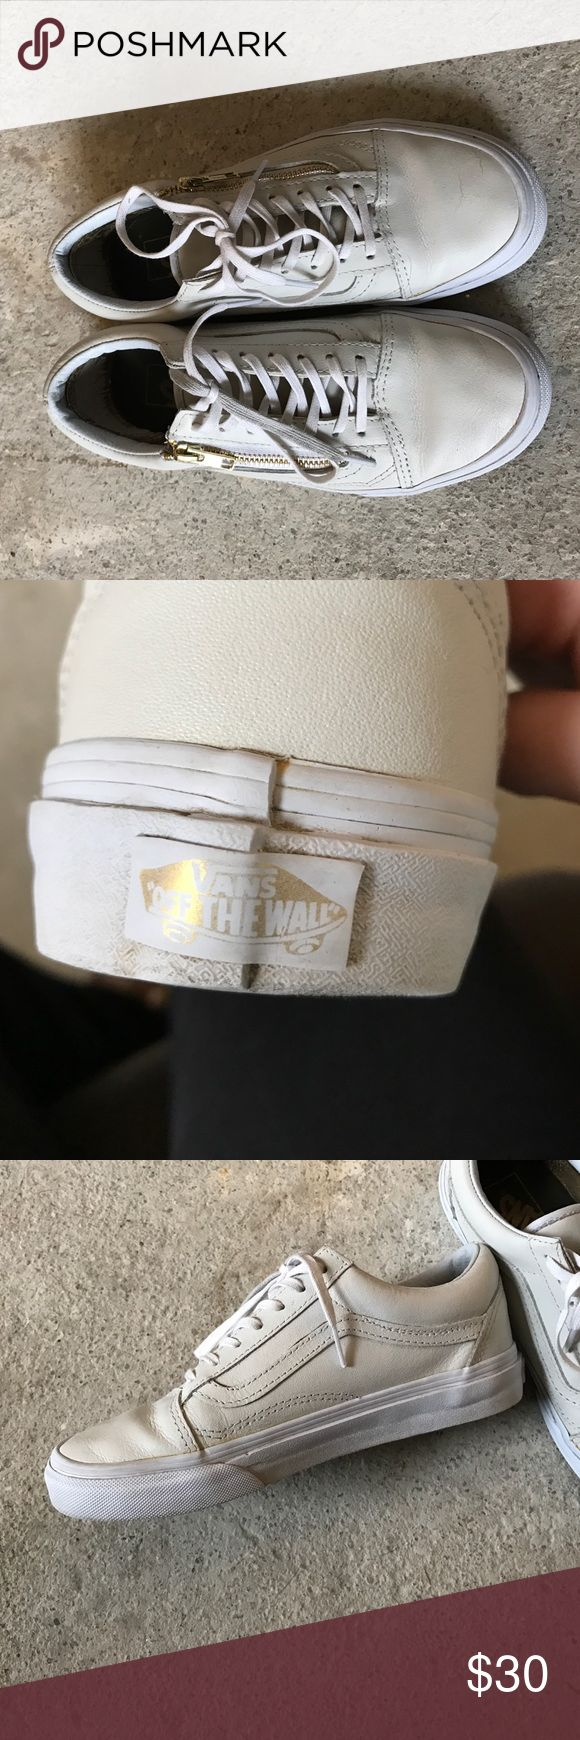 White leather vans Leather white vans with gold zipper on side. Barely worn, women's size 7. Vans Shoes Sneakers